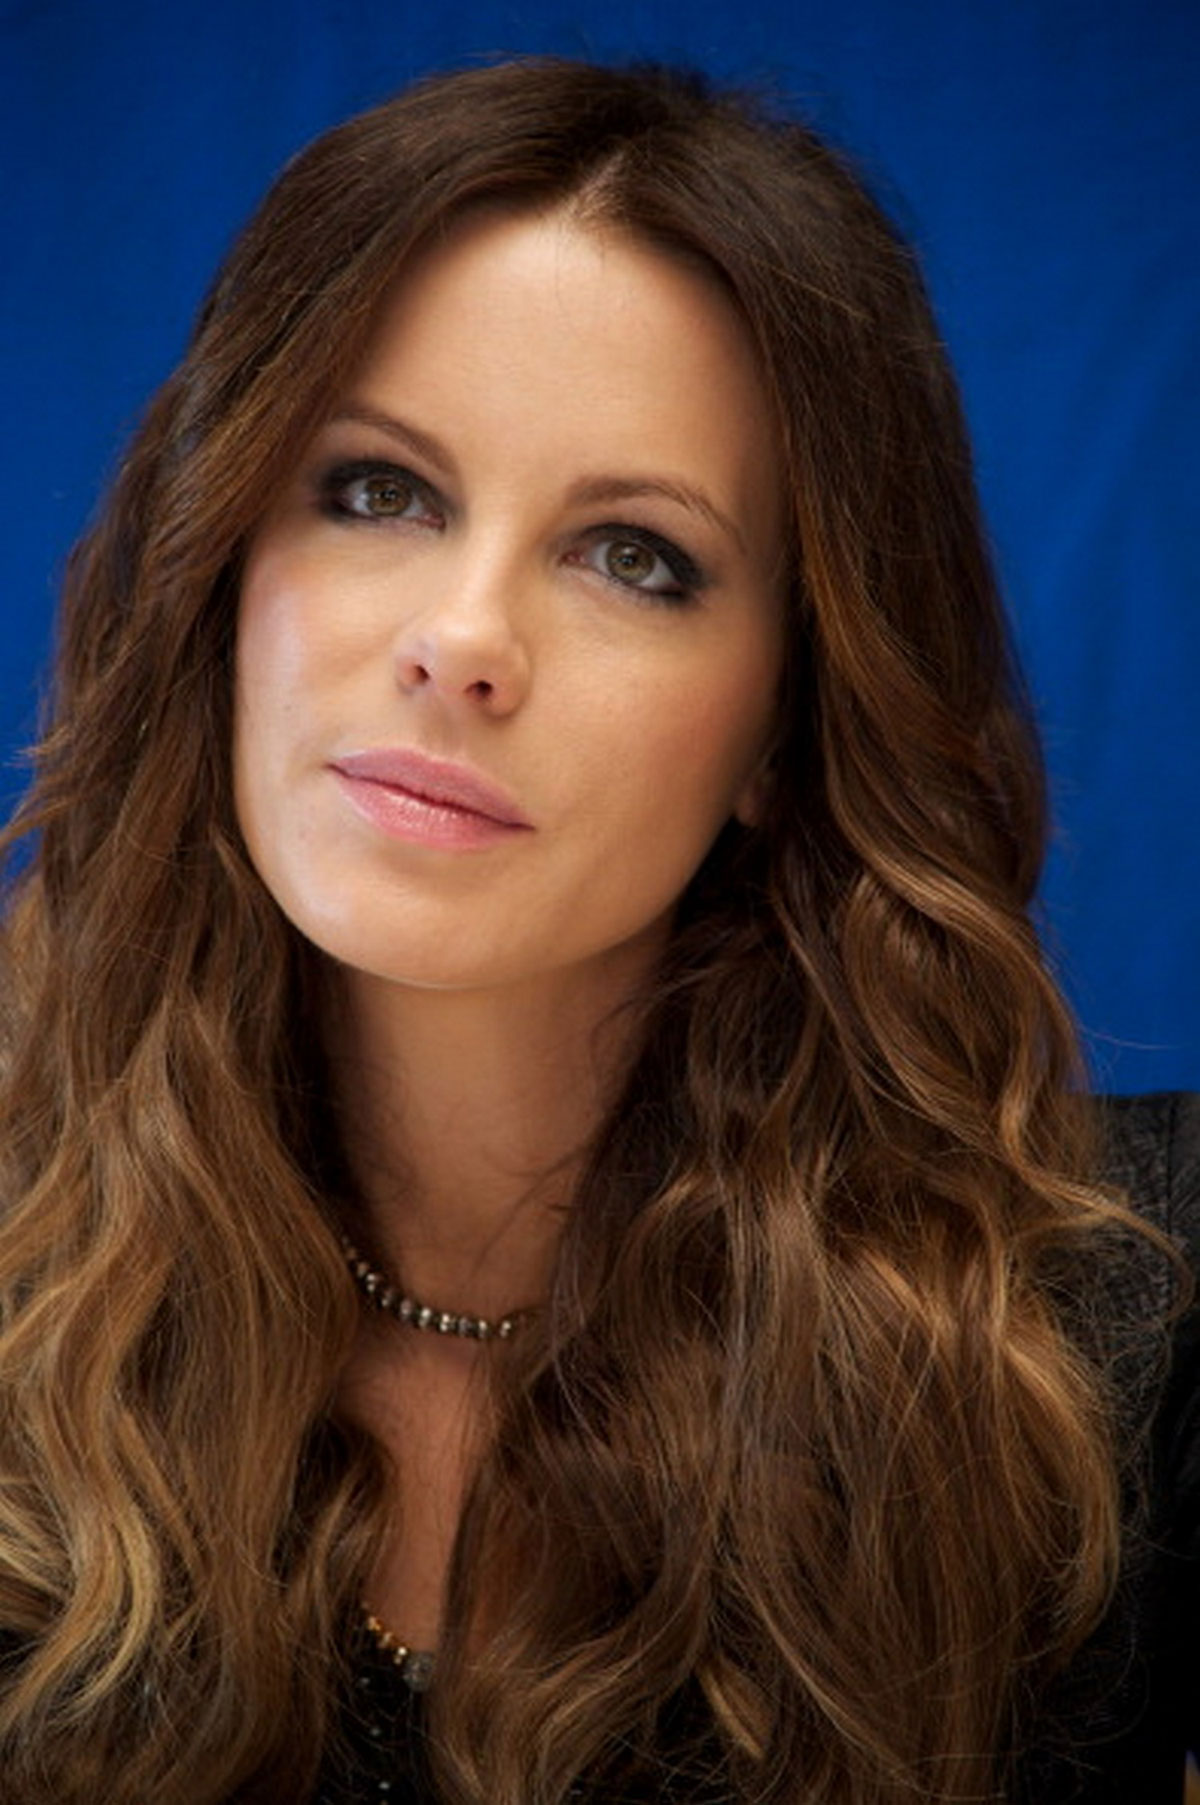 Kate Beckinsale Shows Her Cleavage at the 2020 Producers